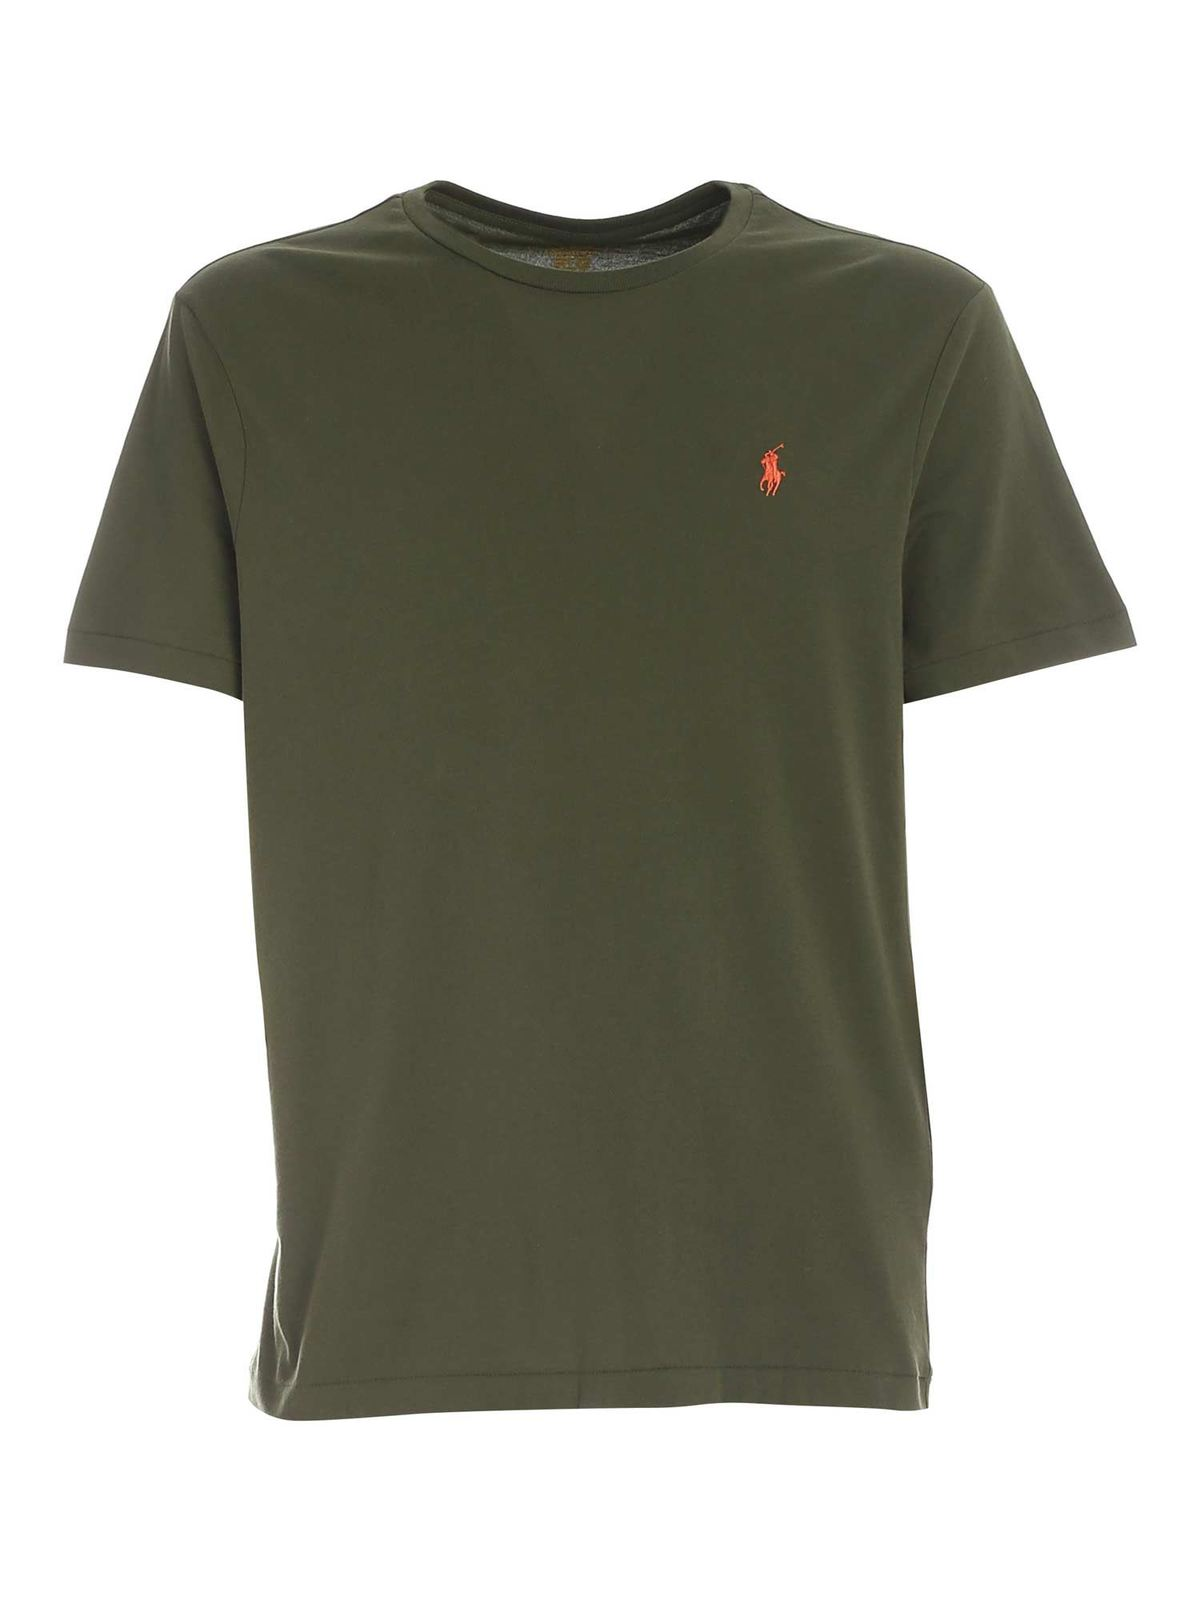 Polo Ralph Lauren T-shirts LOGO EMBROIDERY CORAL T-SHIRT